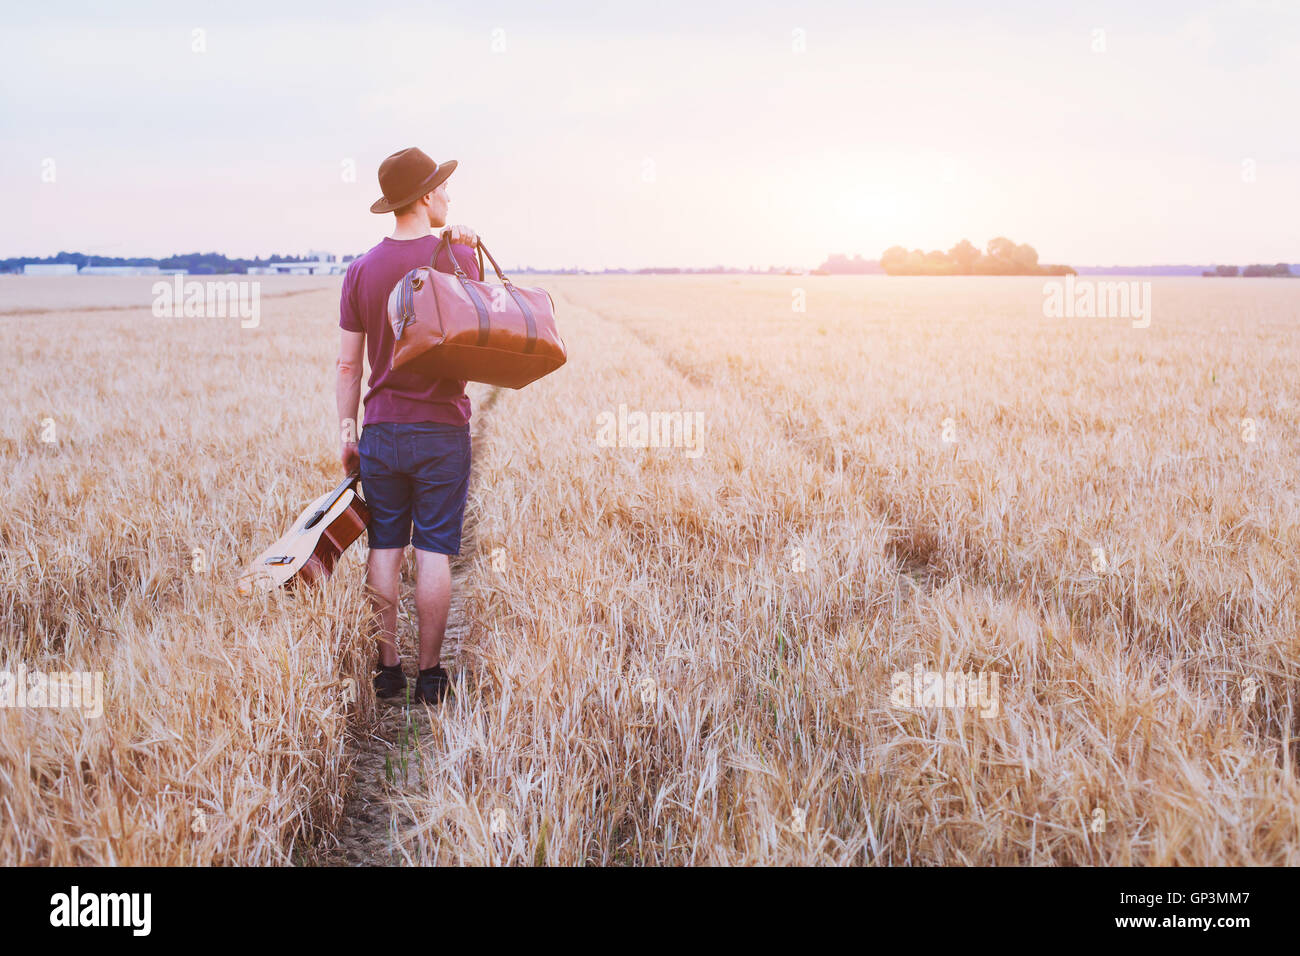 young son leaving home, romantic travel background, man with guitar and road bag walking at sunset field - Stock Image